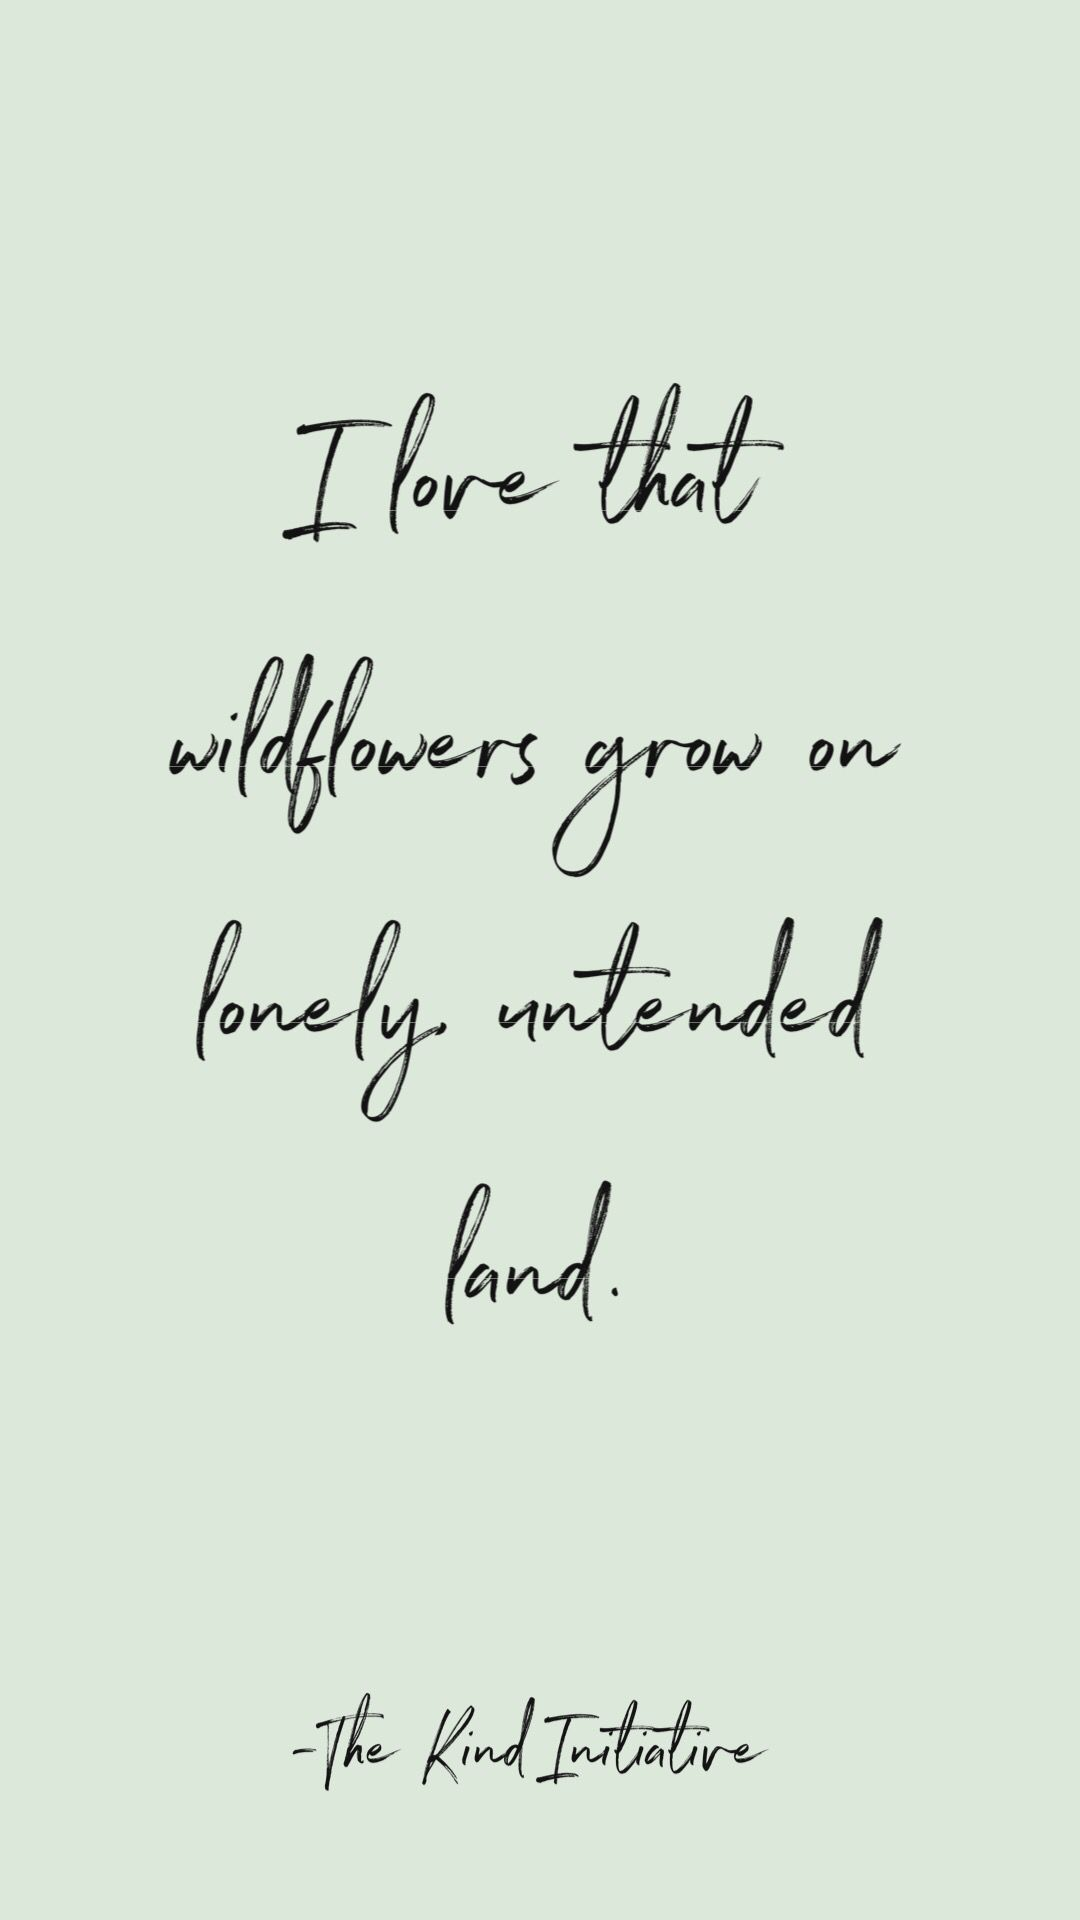 "i love that wildflowers grow on lonely untended land "" quotes"